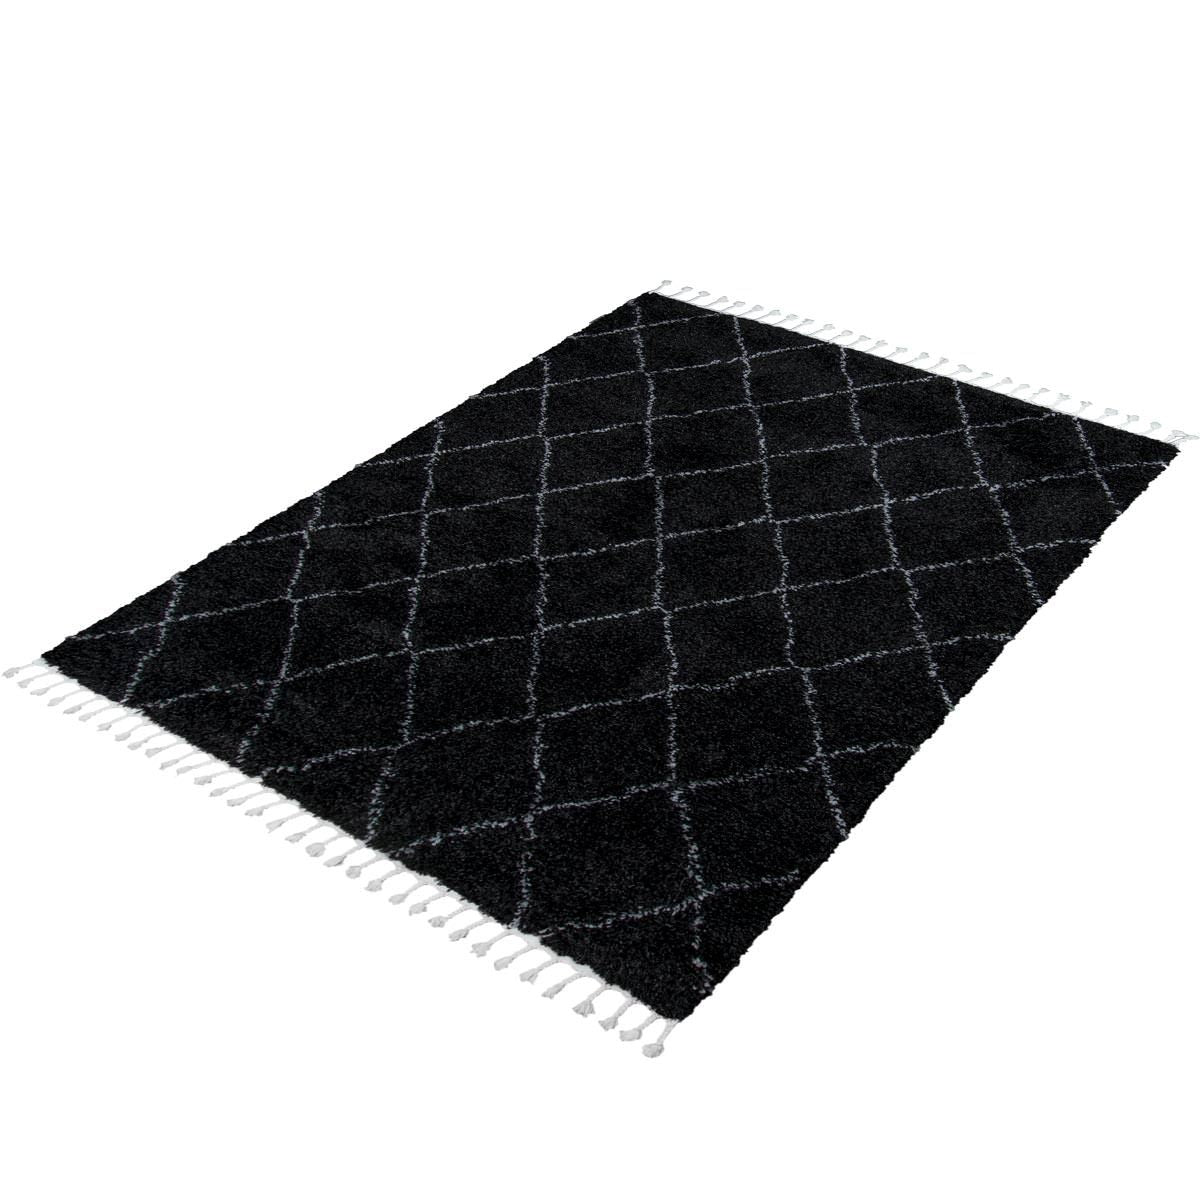 Casablanka Rug 04 Black/White 6